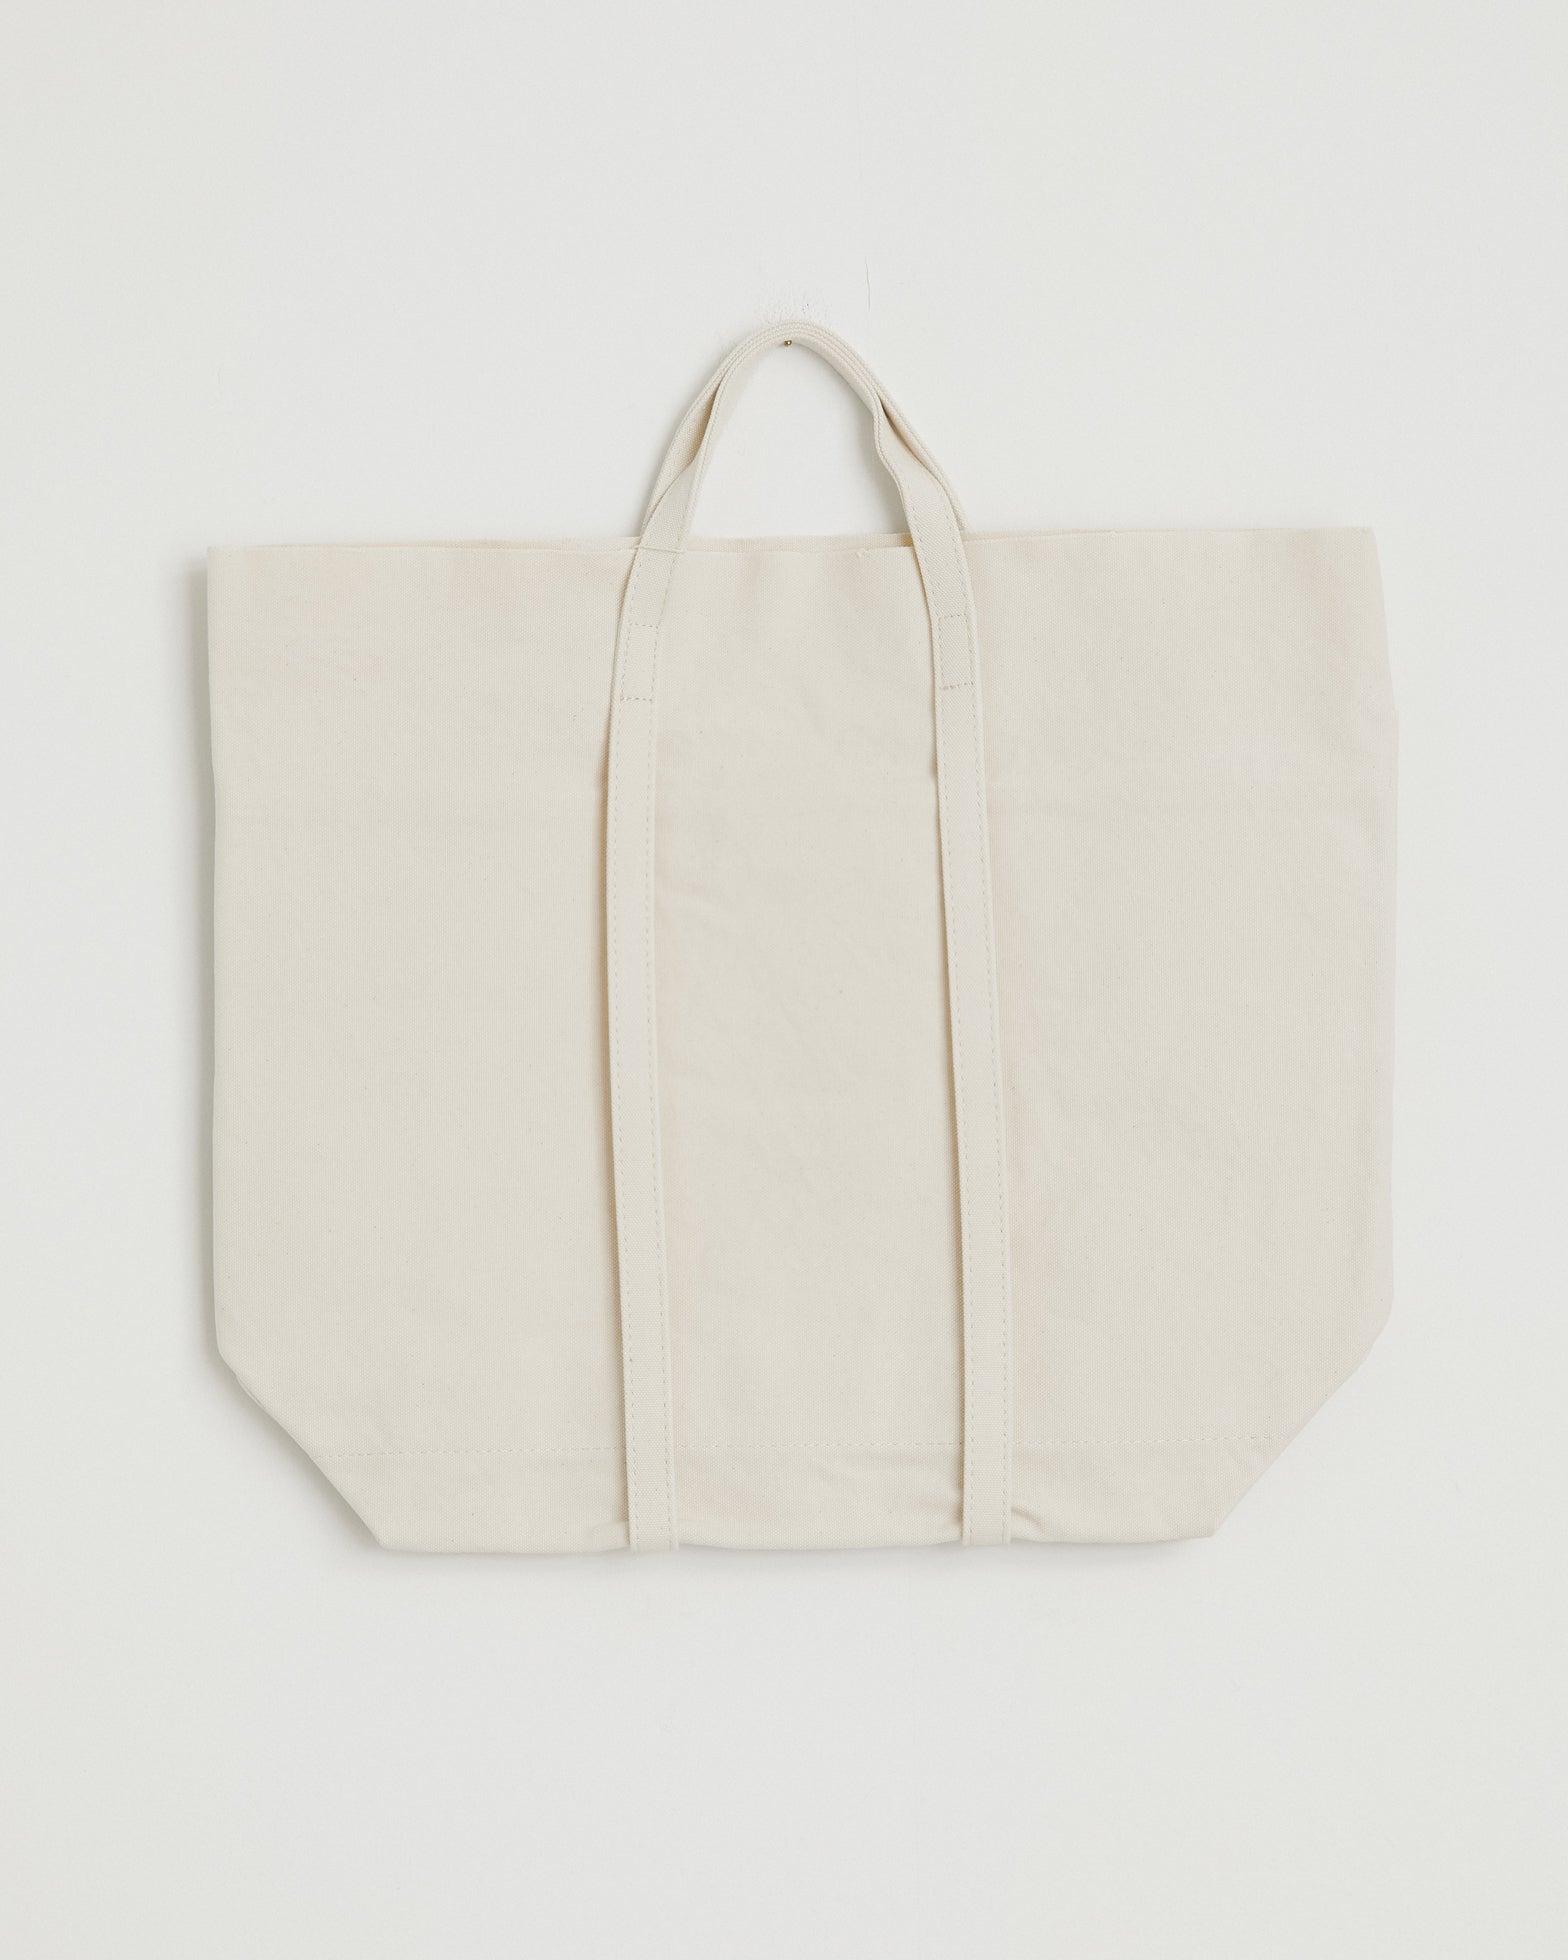 6-Pocket Tote in White